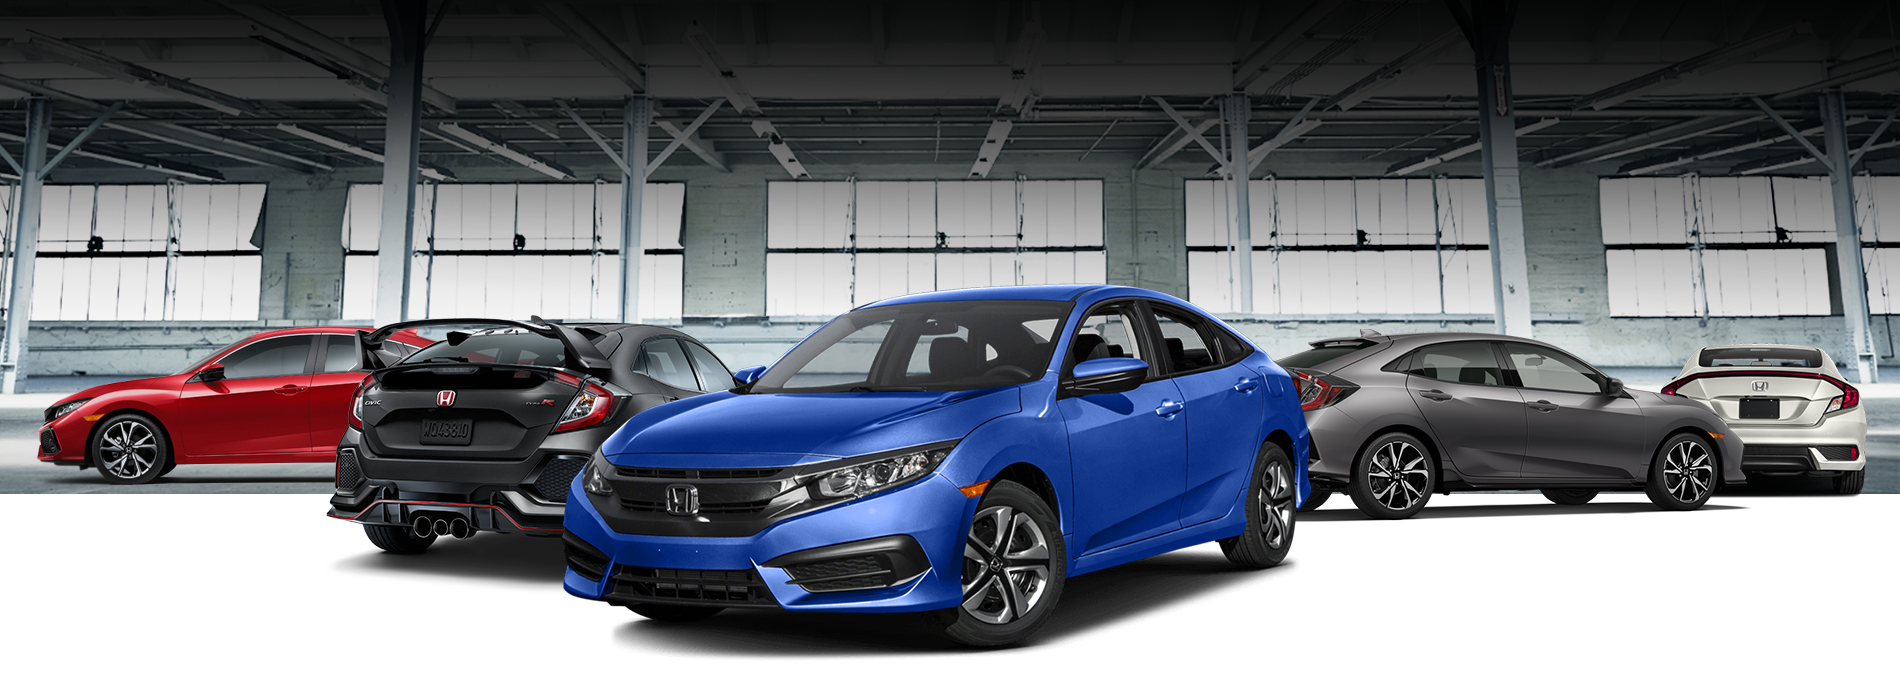 2018 Honda Civic Family